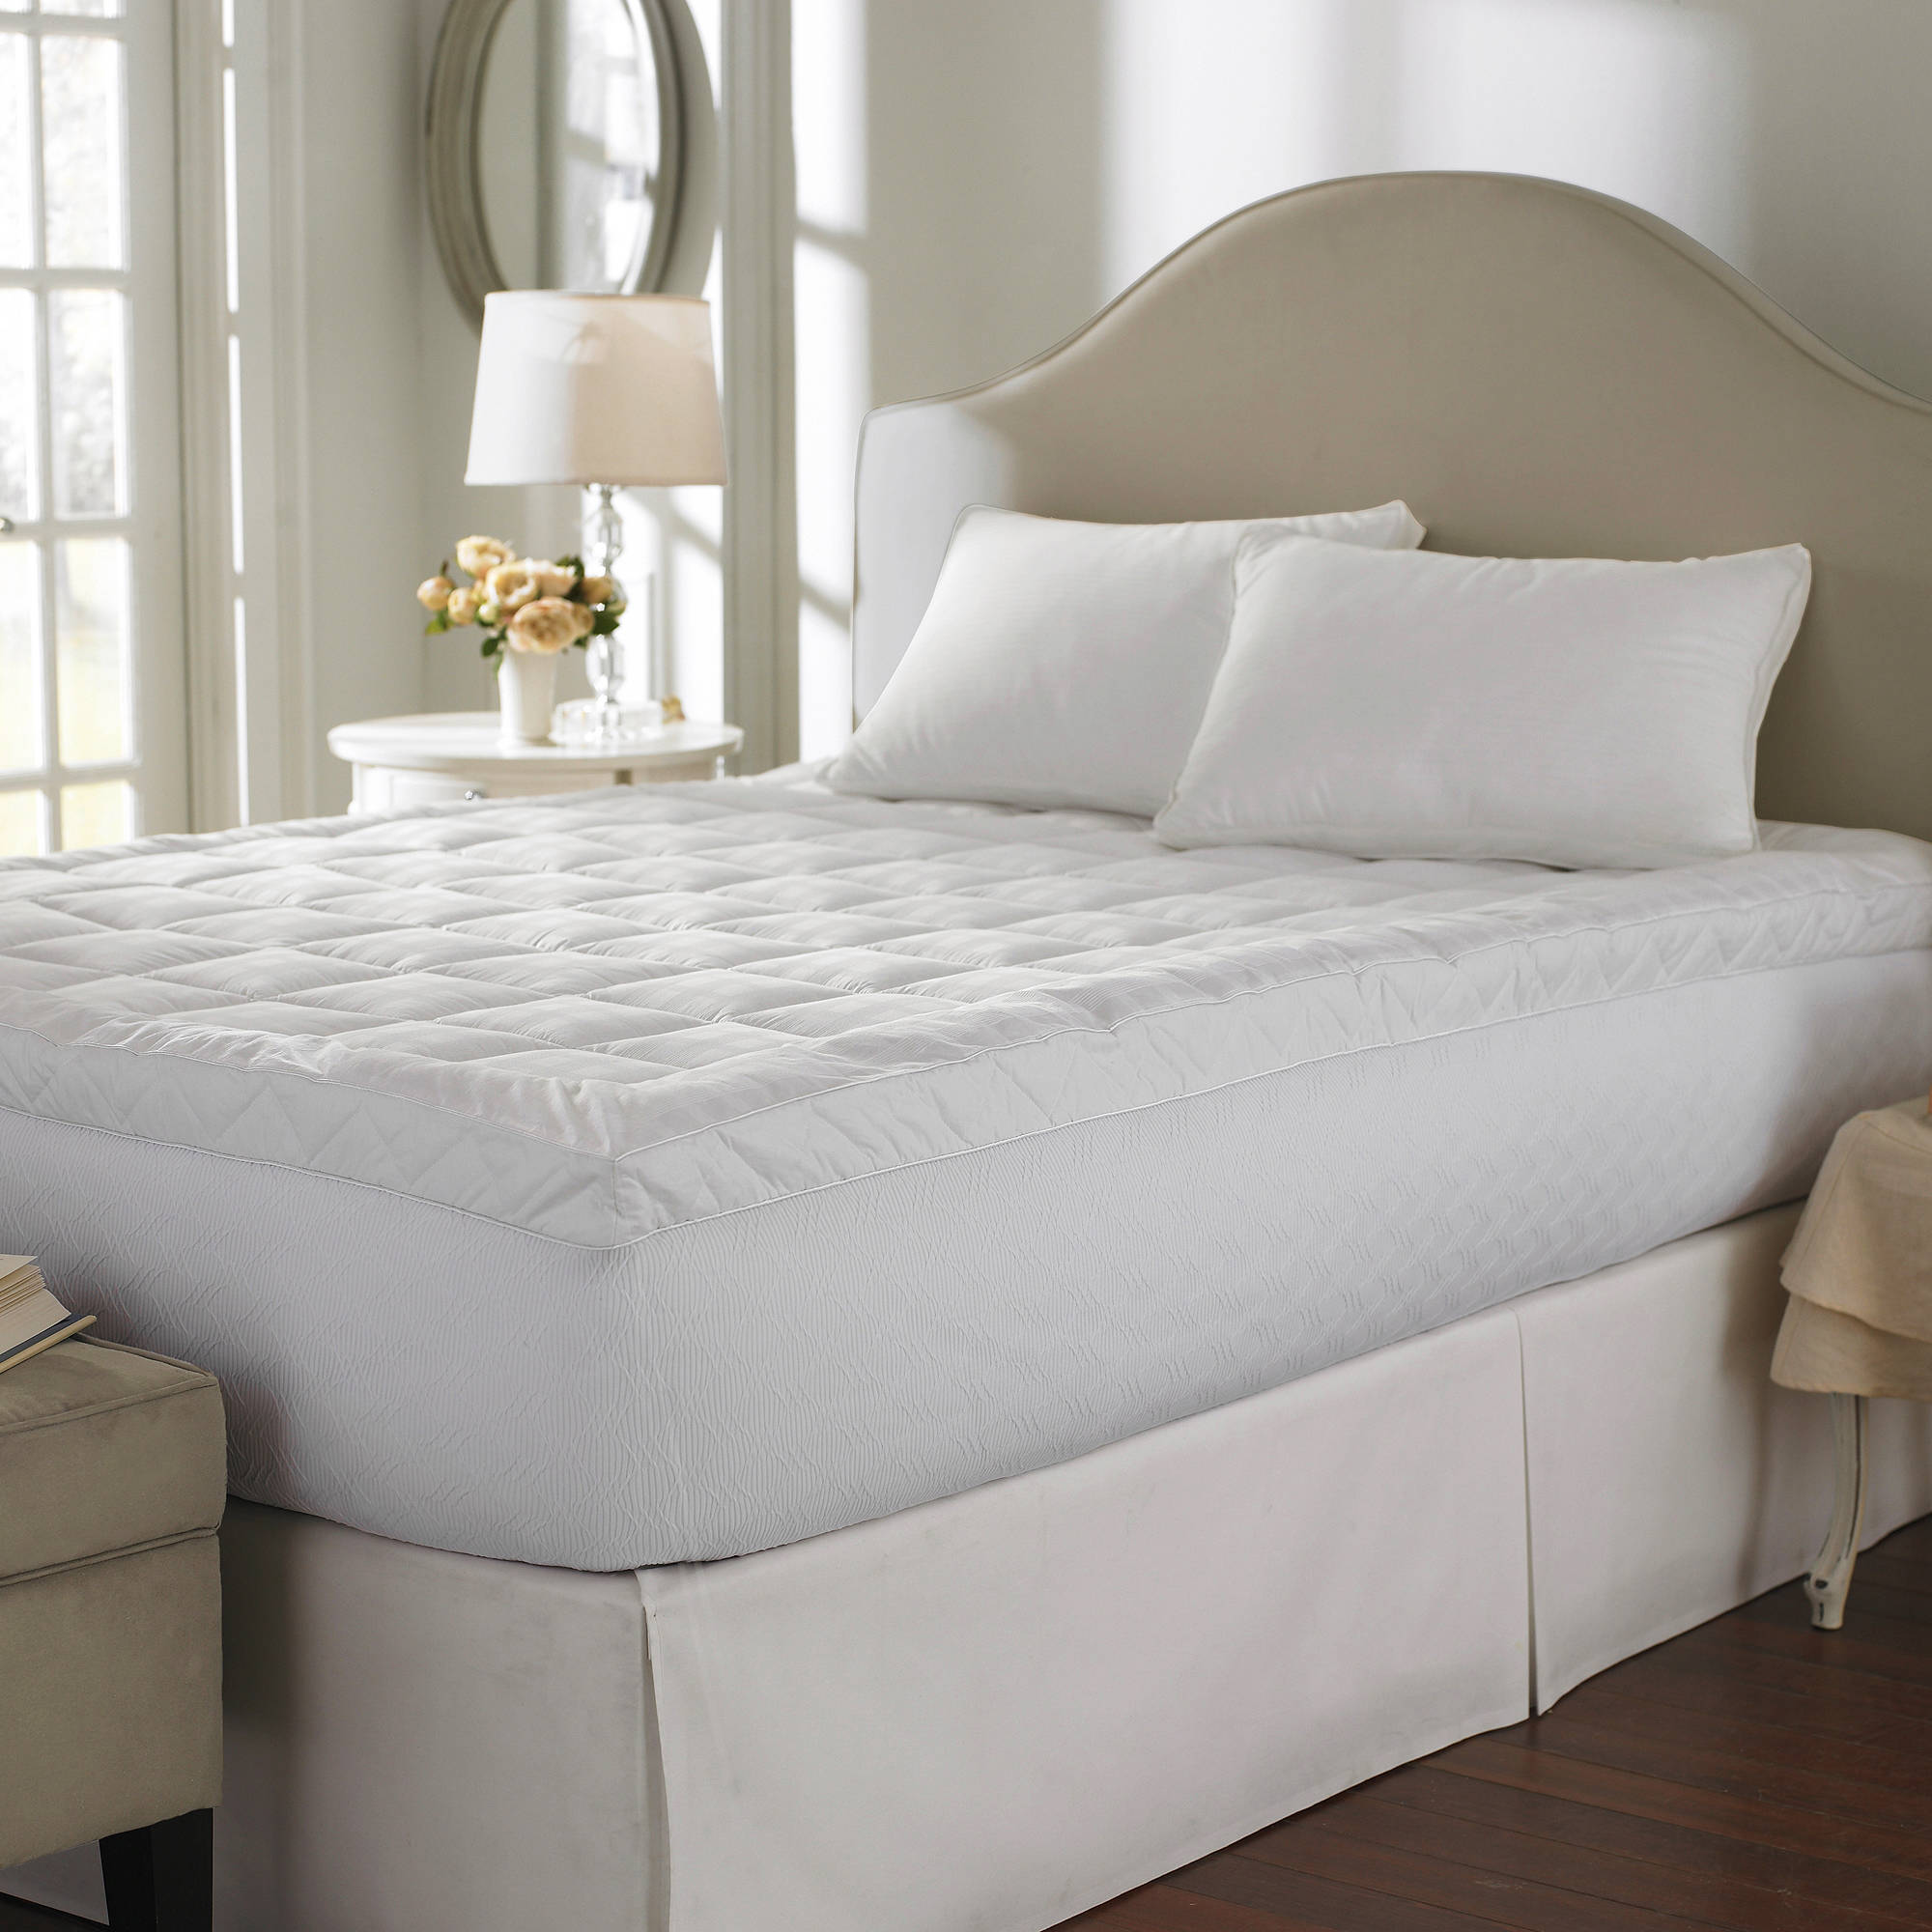 is pillow beautiful mattress fresh this posed fortable topper gel dream form pad of design elegant top foam